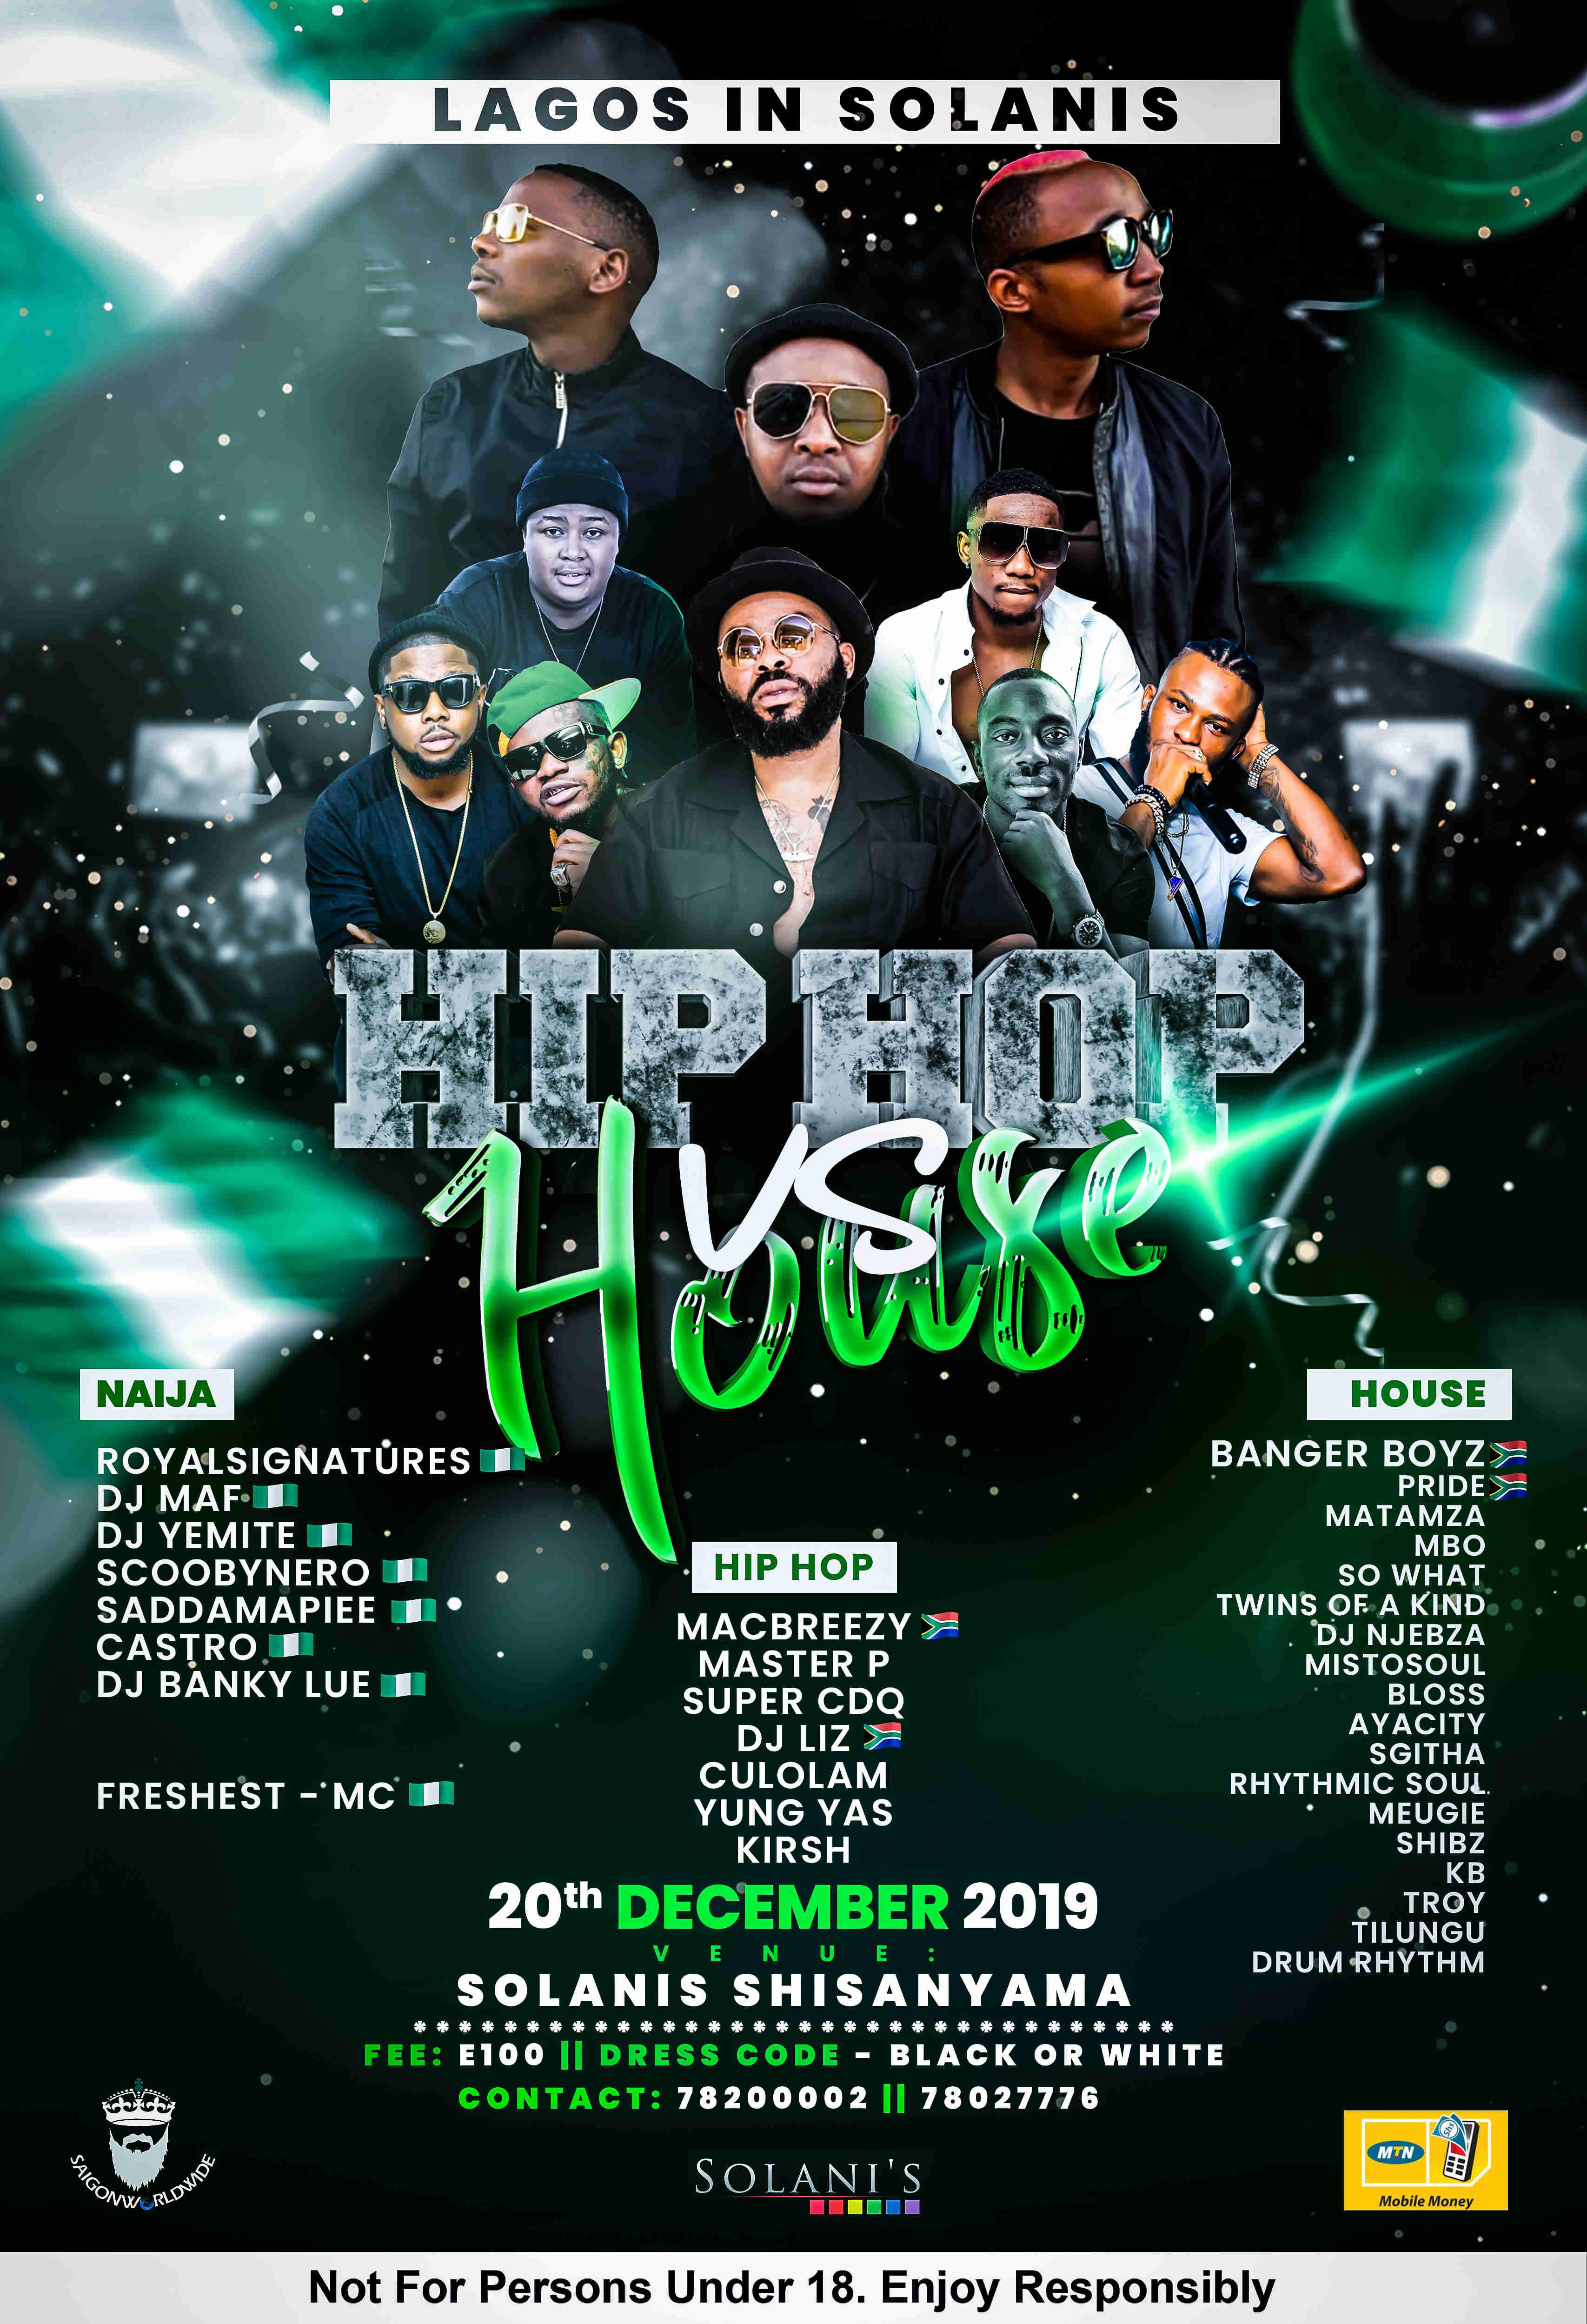 Lagos In Solanis - HipHop vs House